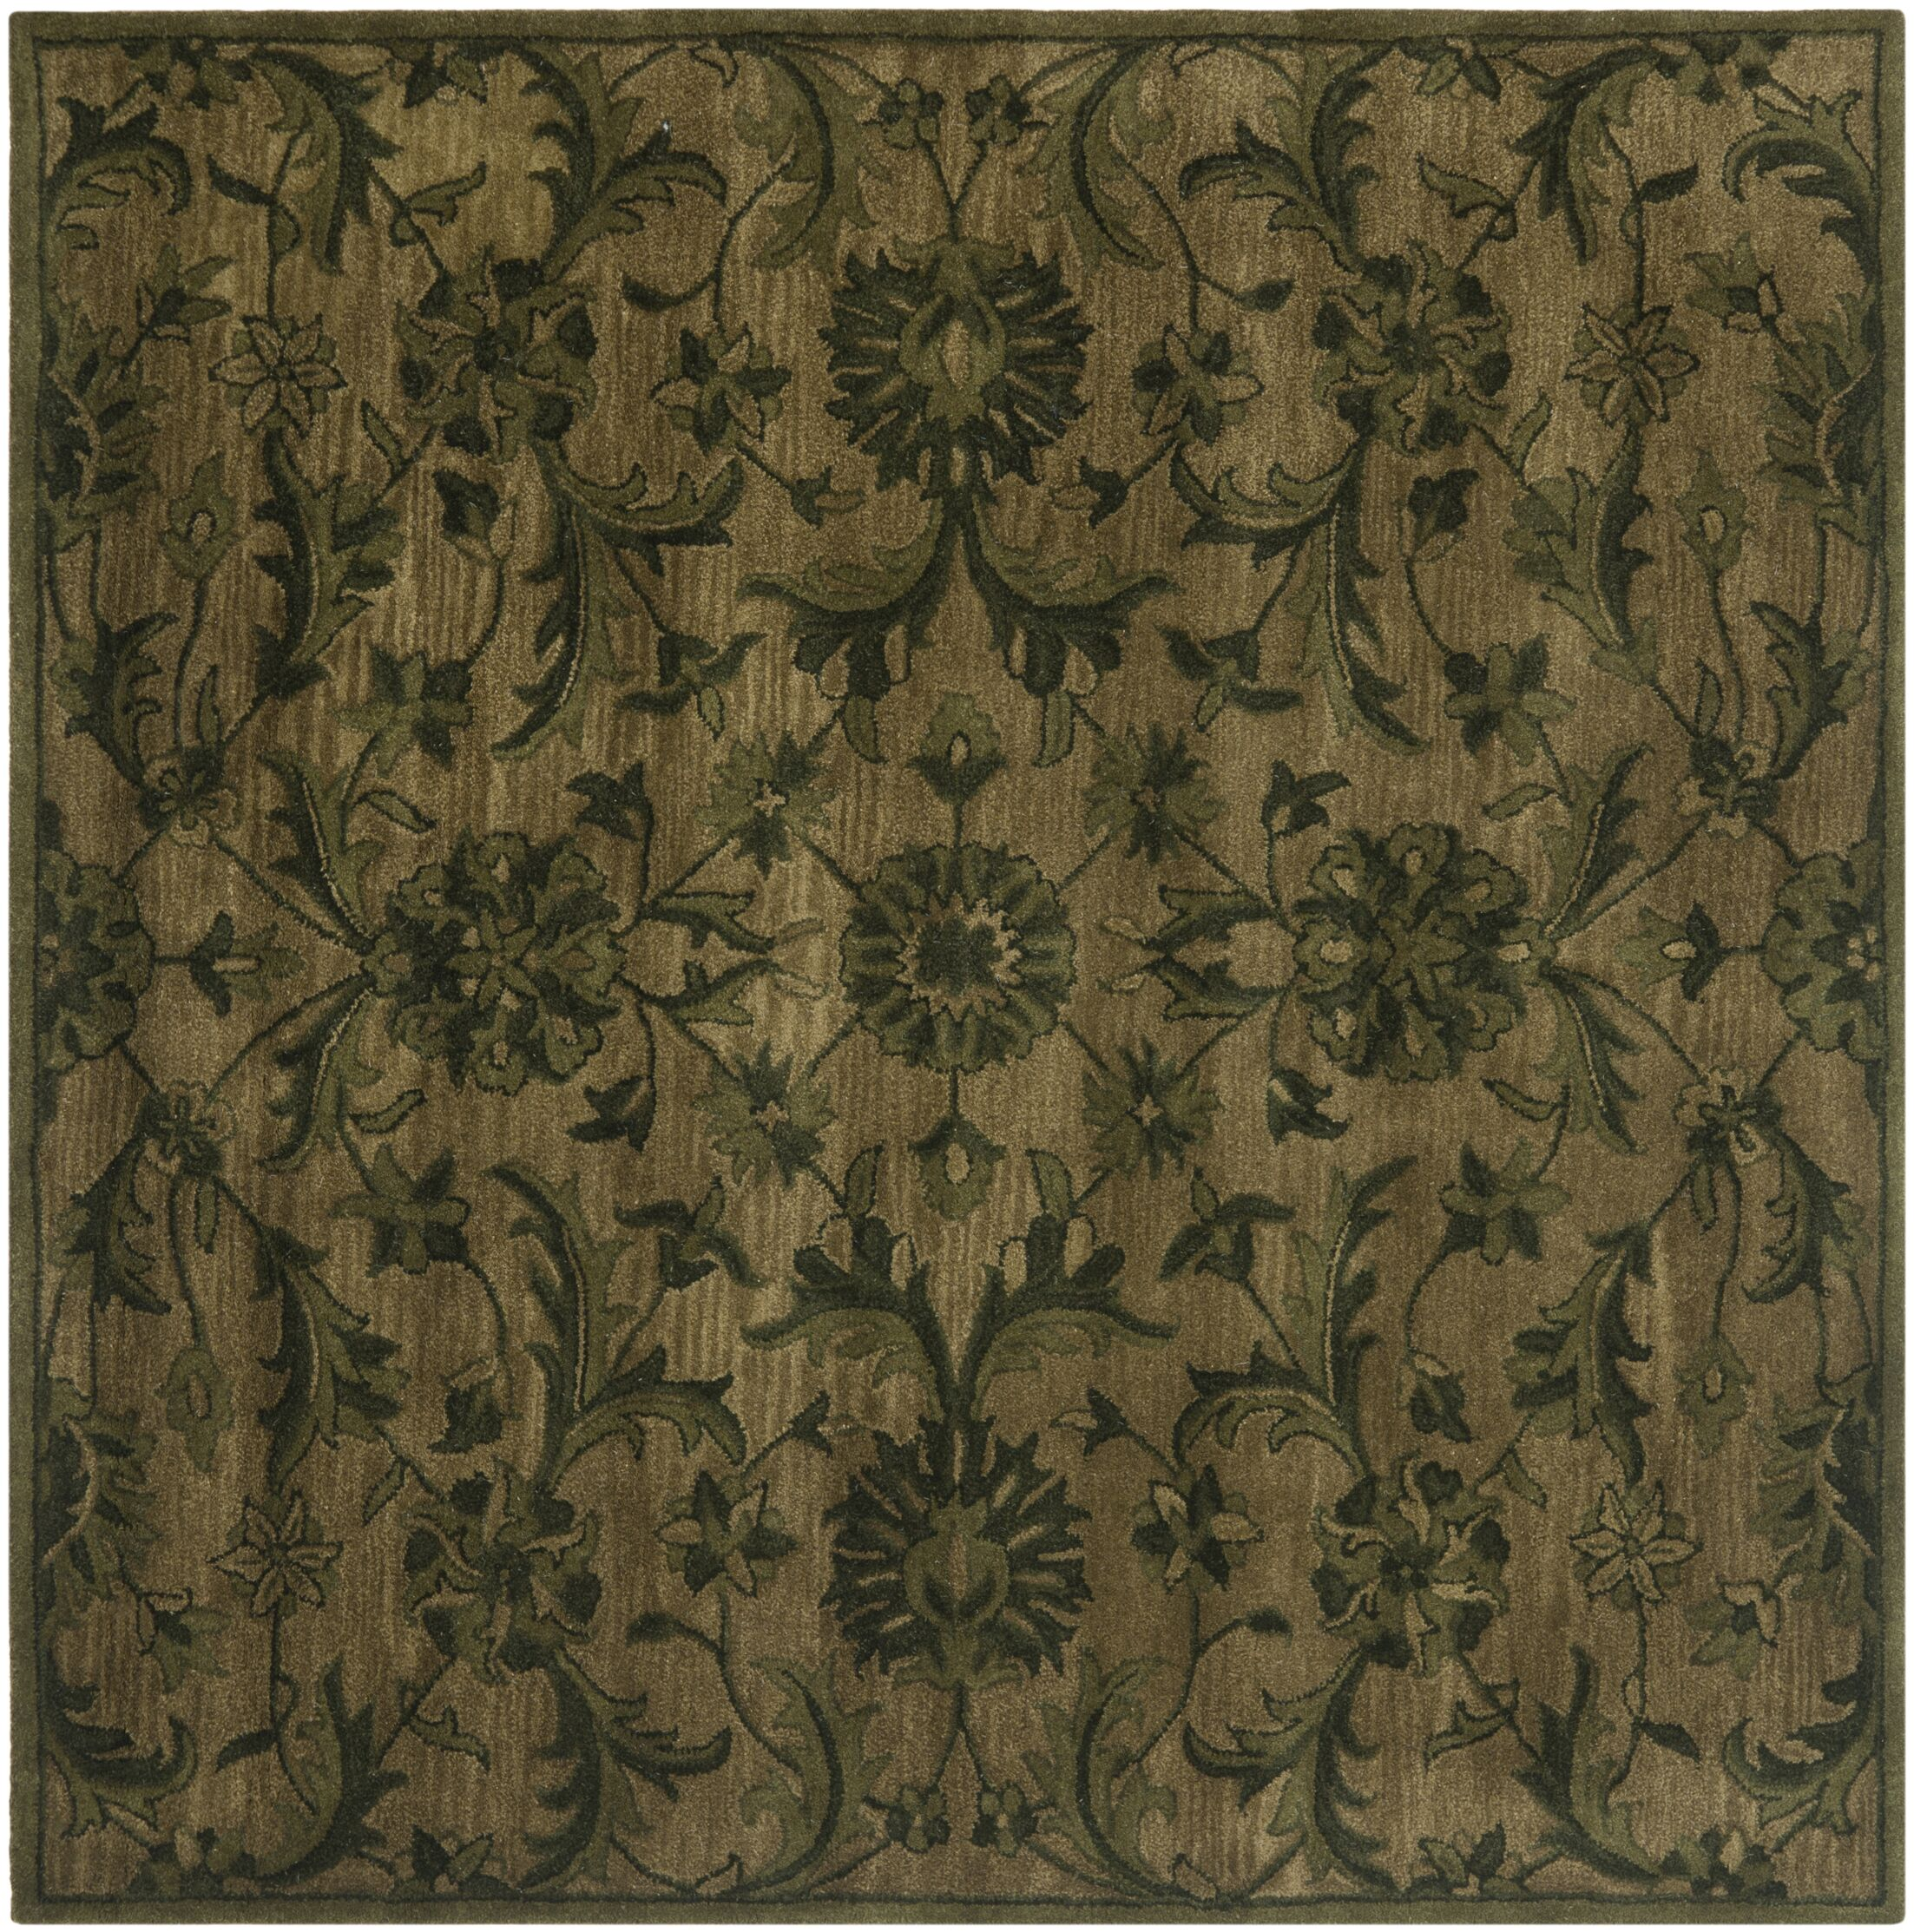 Dunbar Hand-Woven Wool Area Rug Rug Size: Square 6'